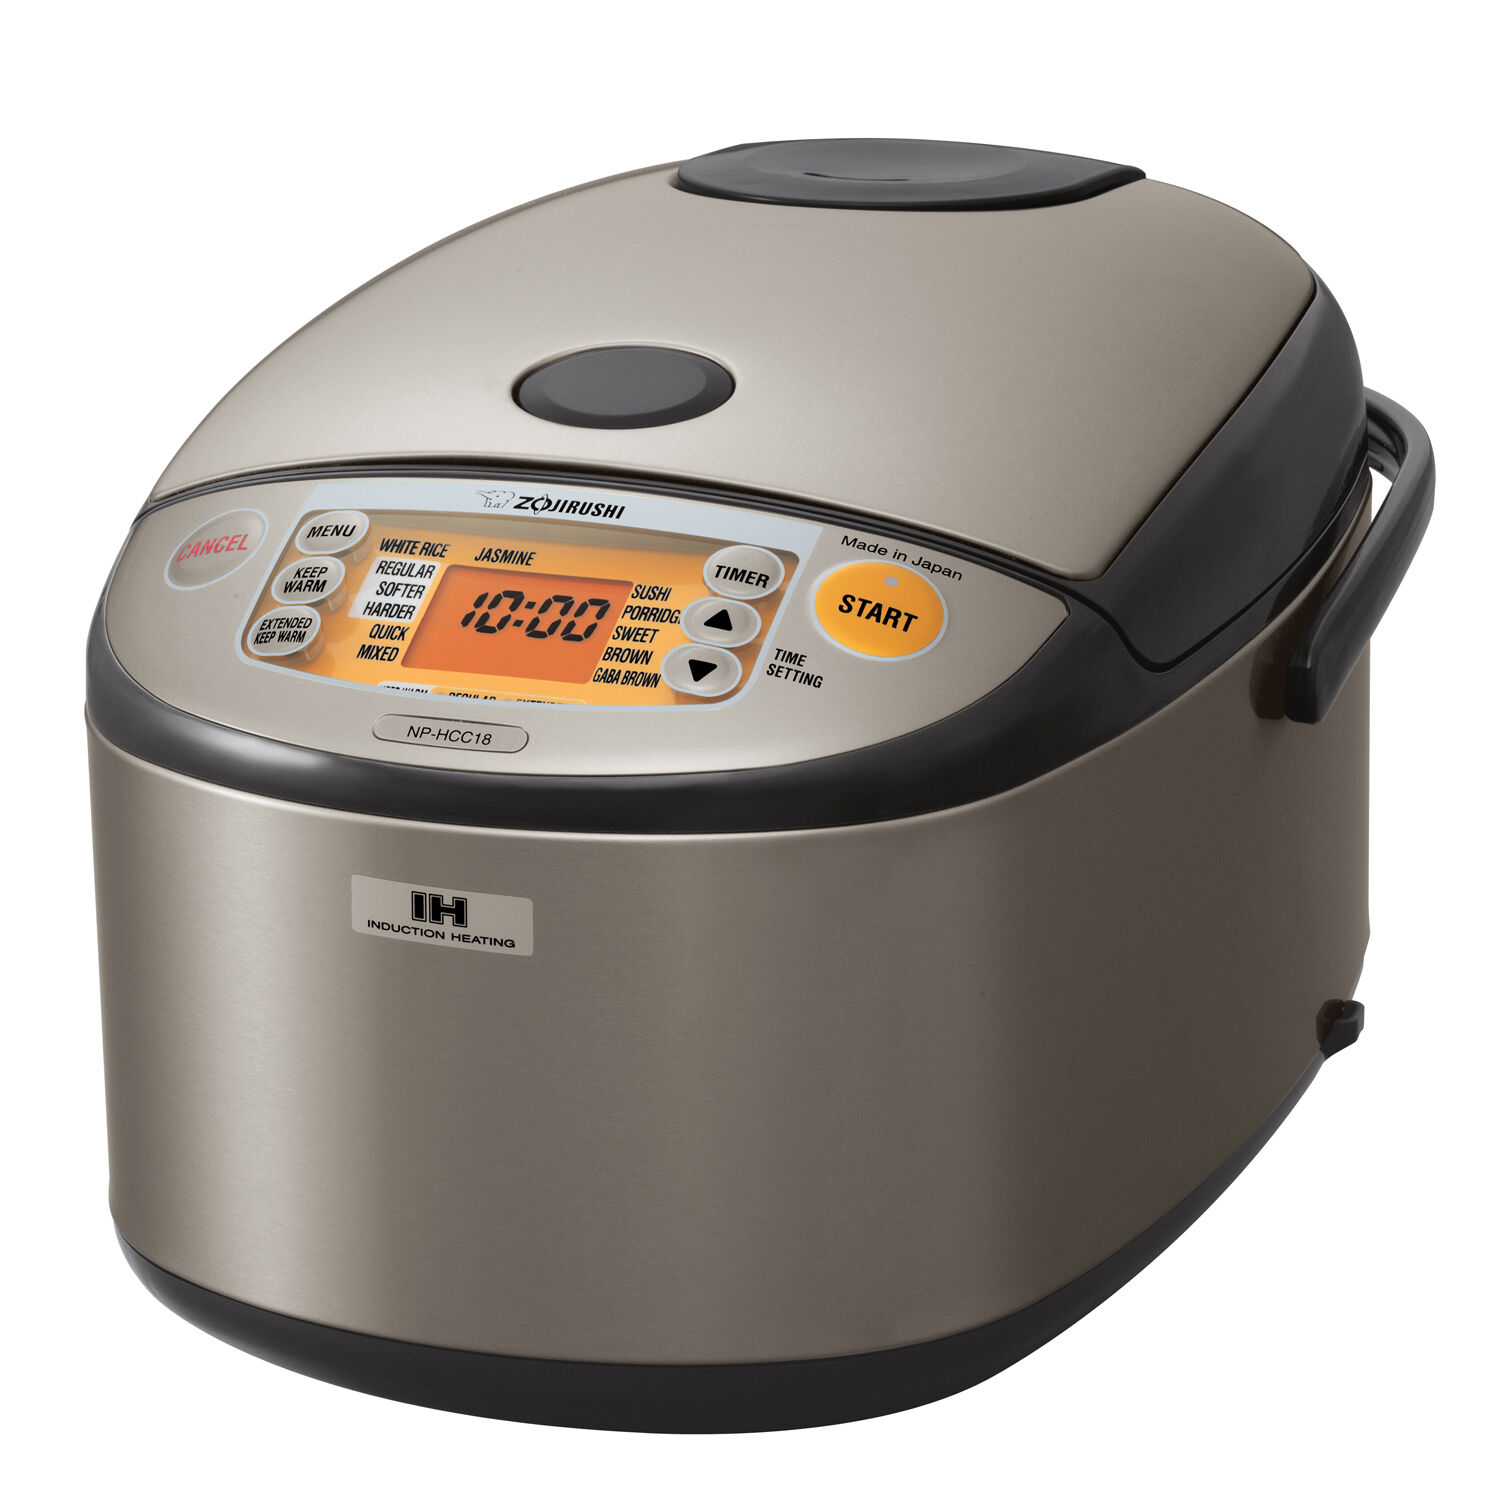 Zojirushi Induction Heating System Rice Cooker & Warmer | Sur La Table